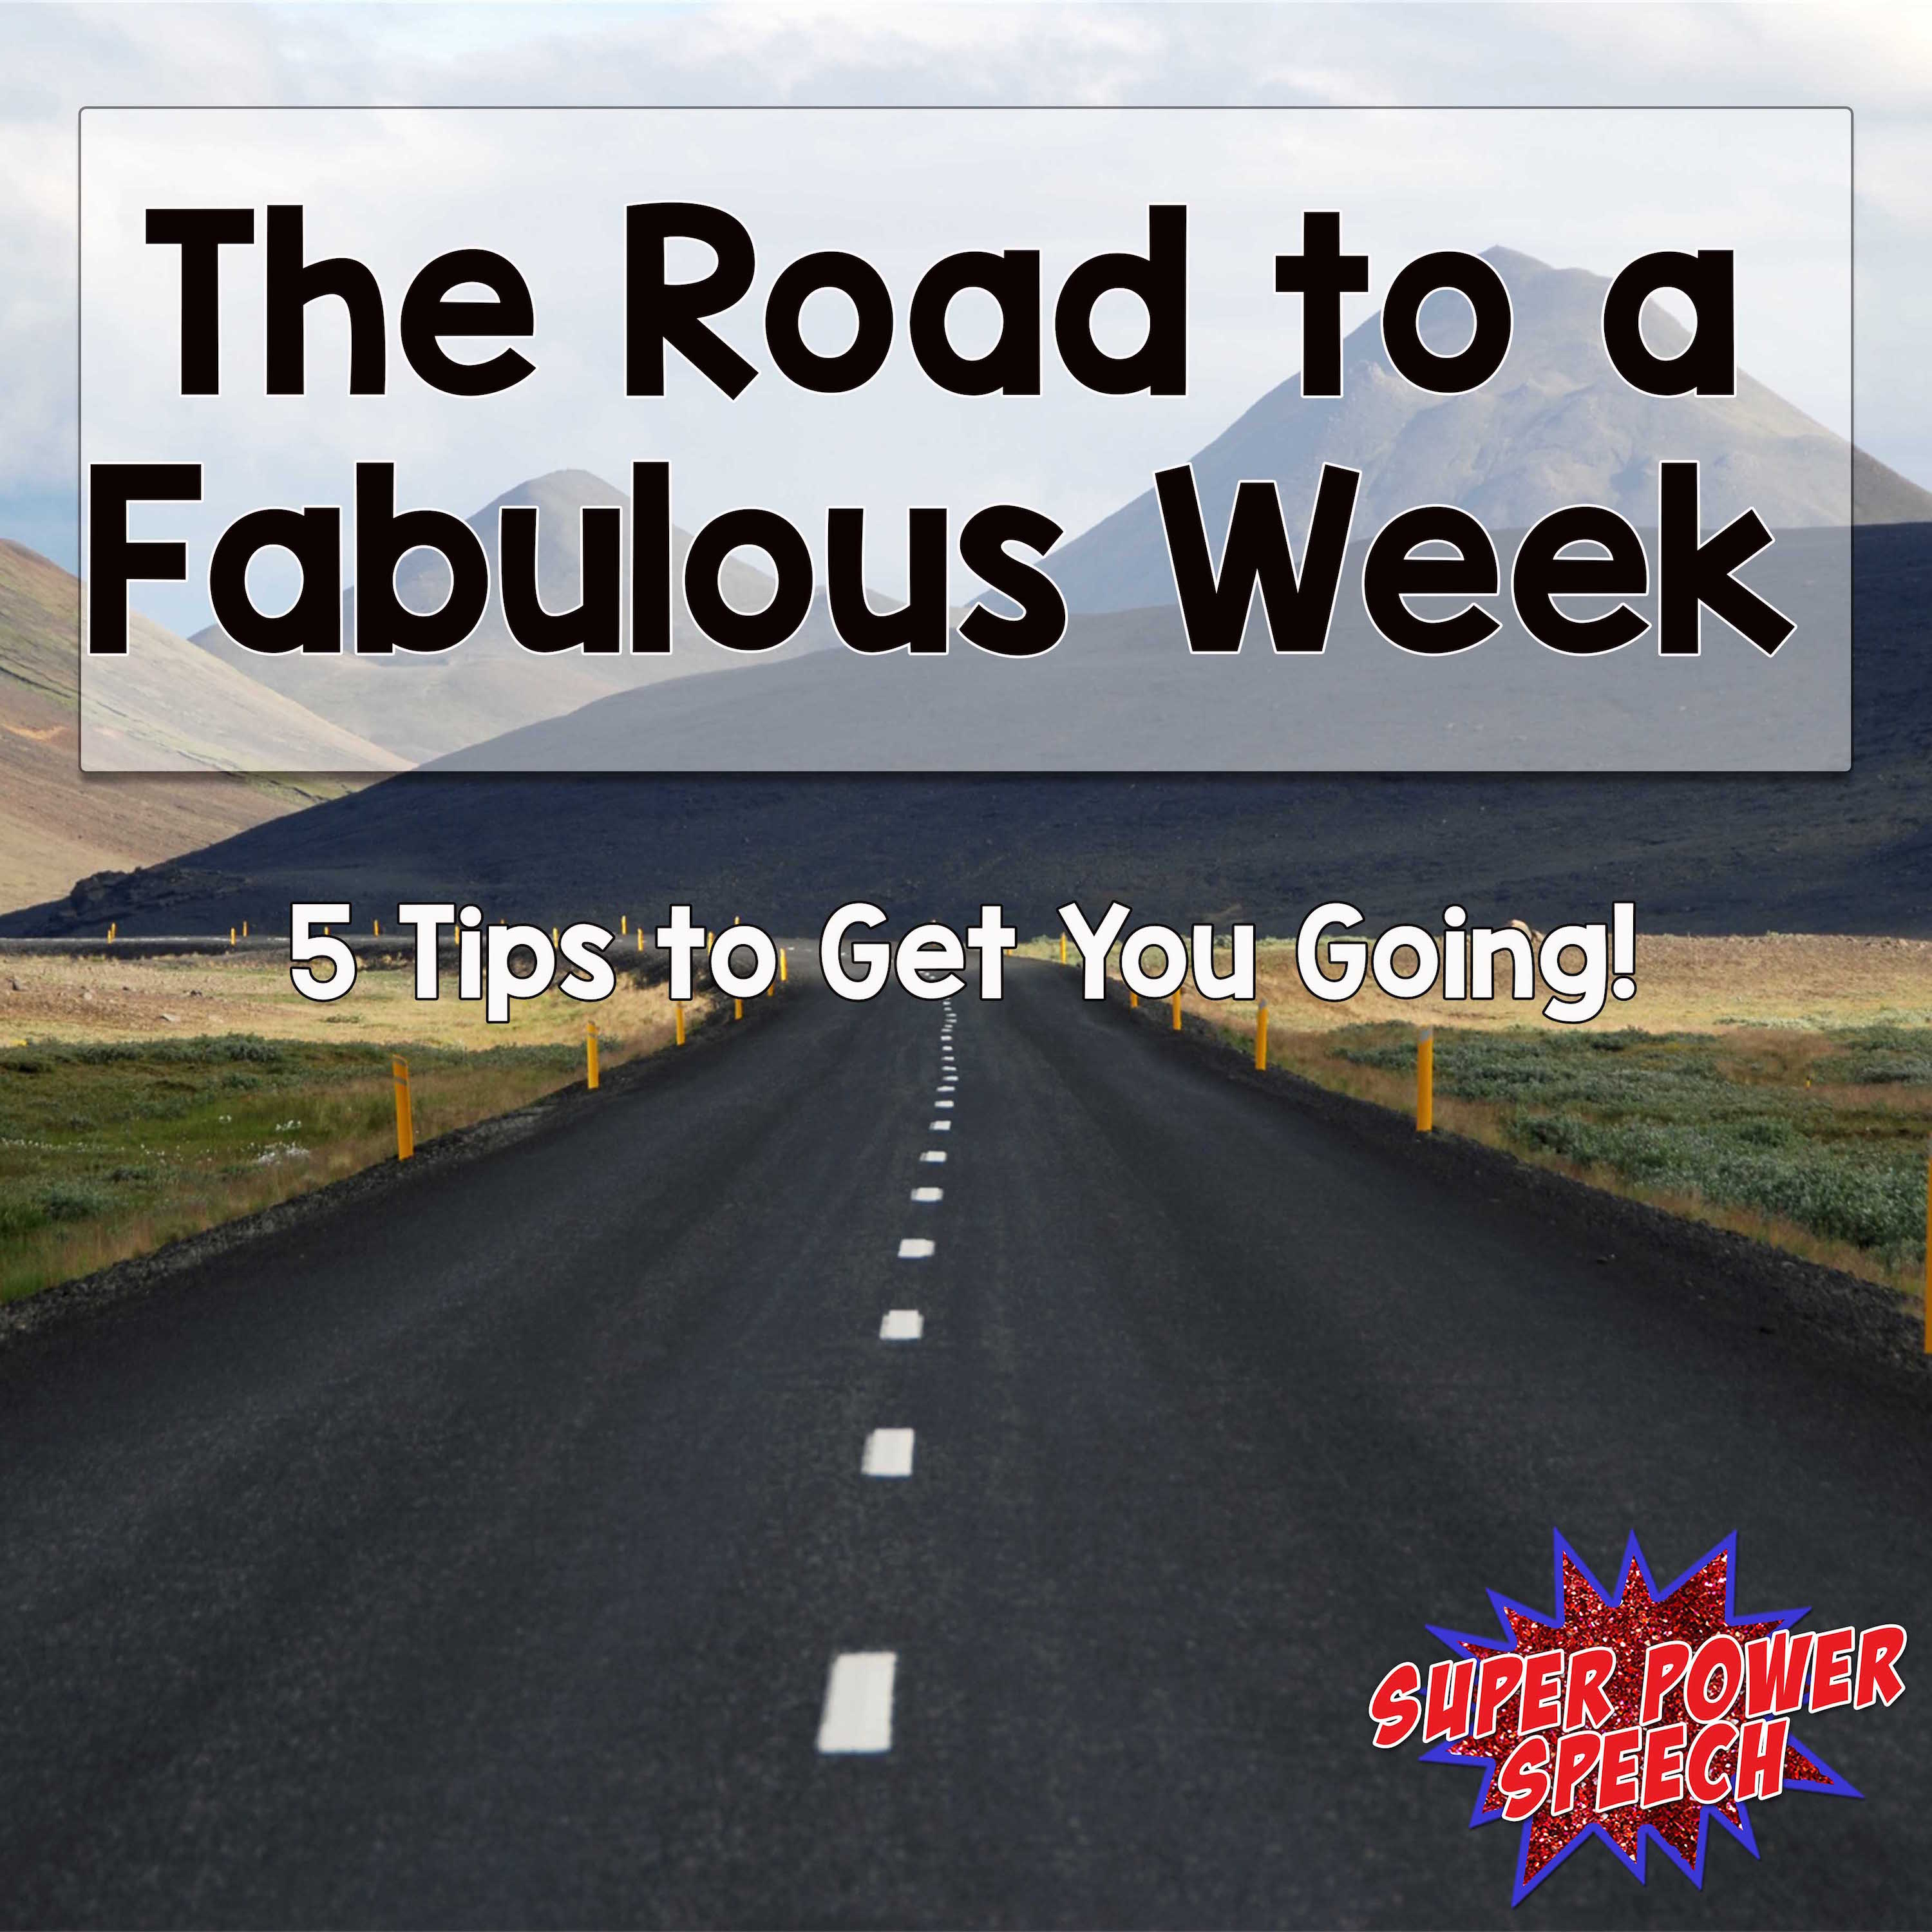 The Road to a Fabulous Week